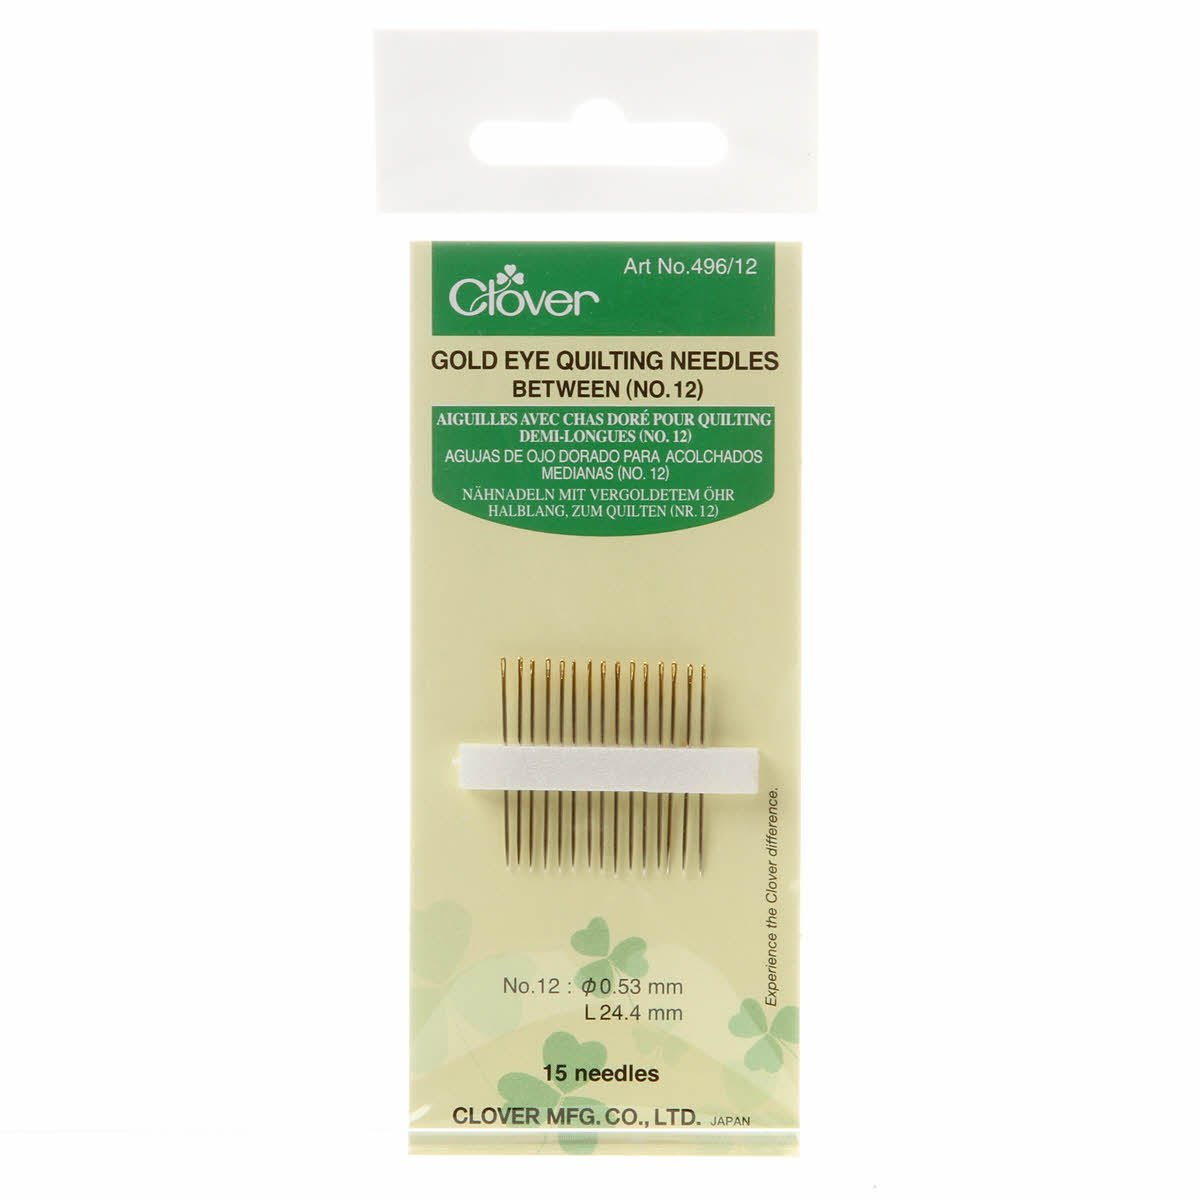 Clover Gold Eye  Quilting Needles 496CV-12